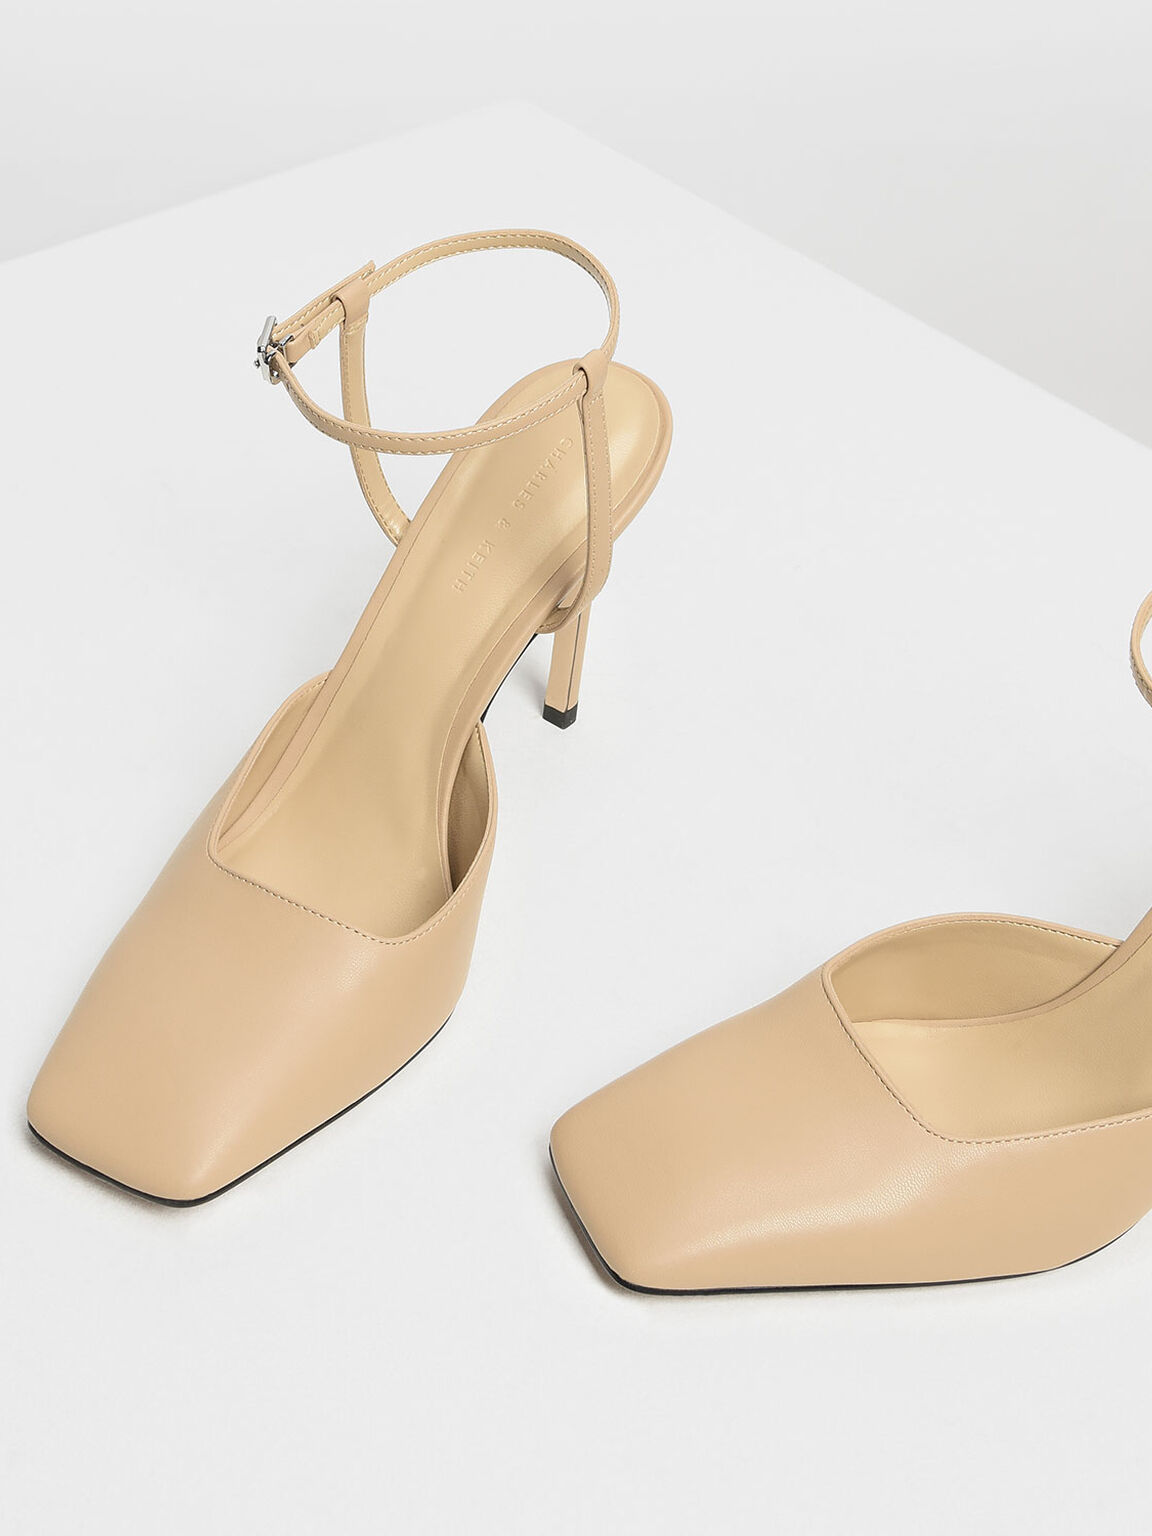 Square Toe Stiletto Pumps, Nude, hi-res